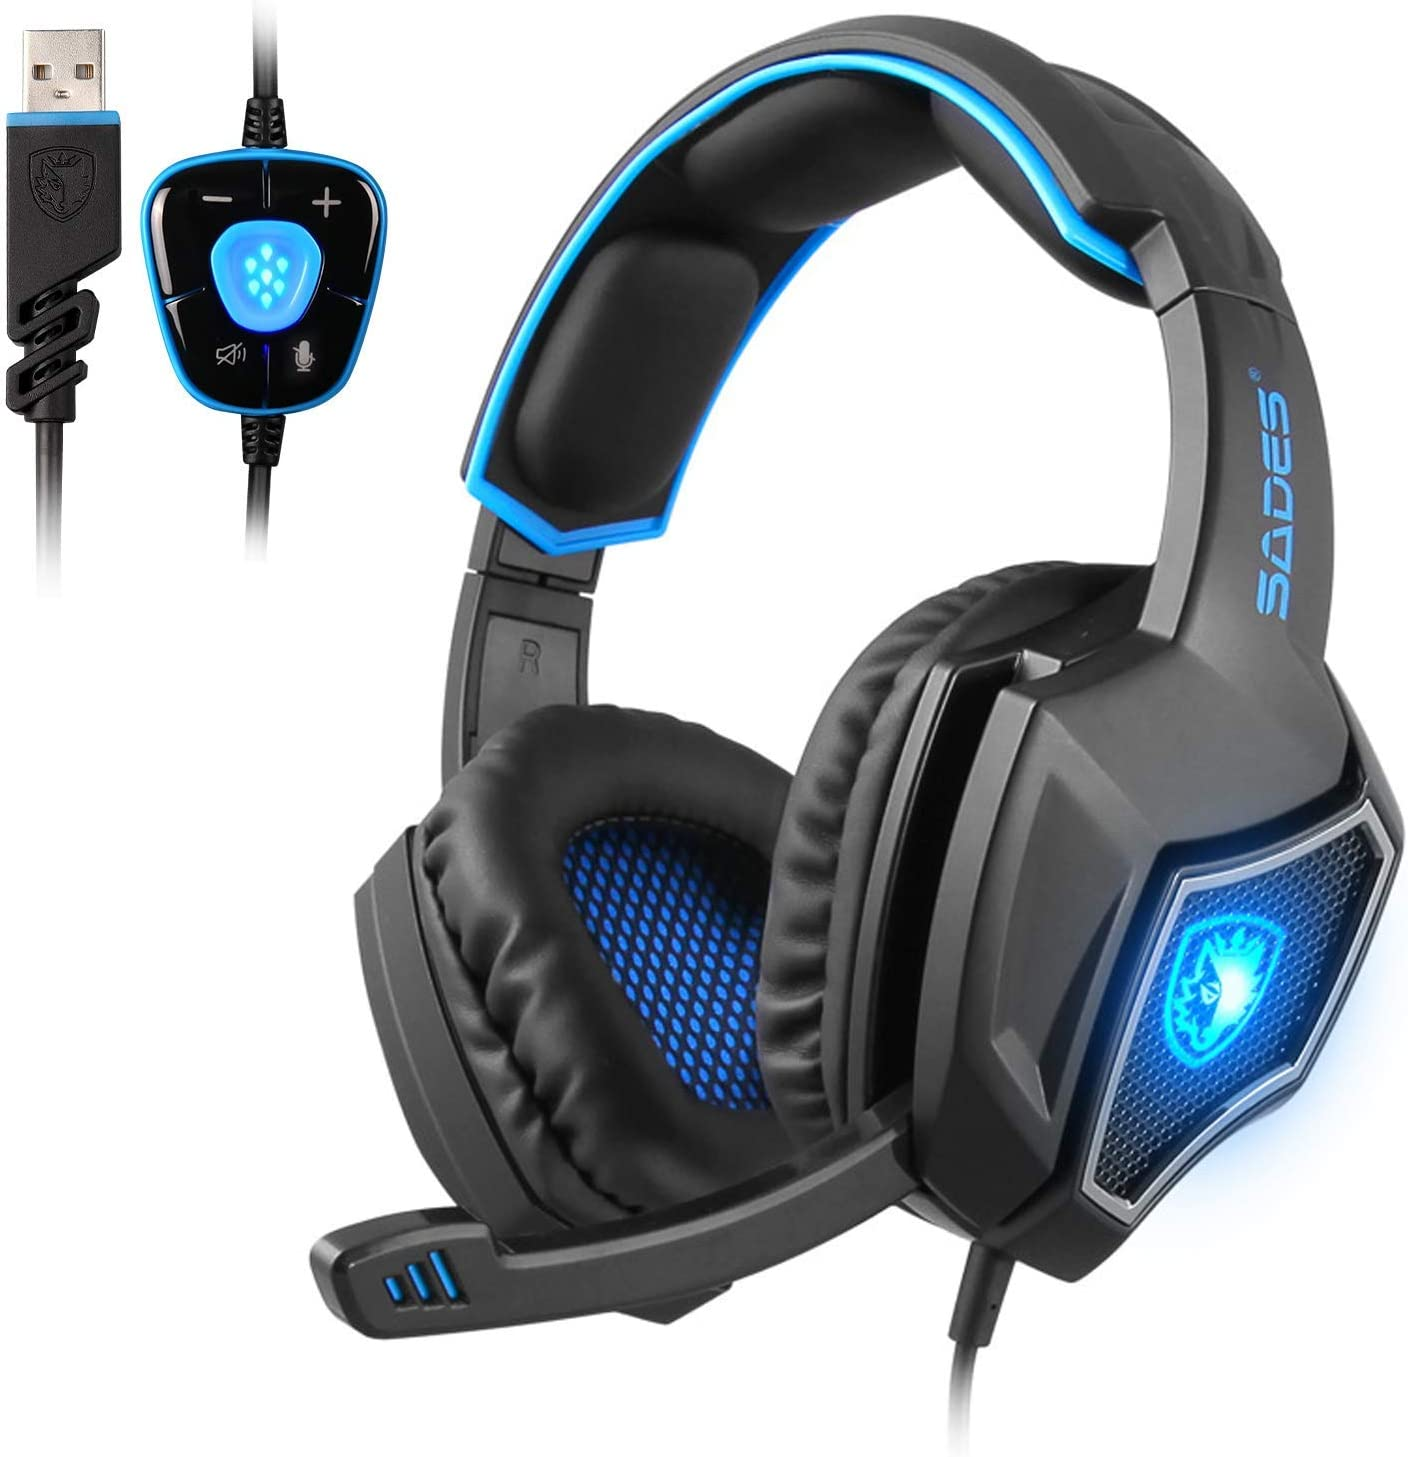 SADES SpiritWolf 7.1 Surround Sound Gaming Headset PC Stereo Gaming Headphones with Microphone Noise Cancelling, LED Light and Volumn Control